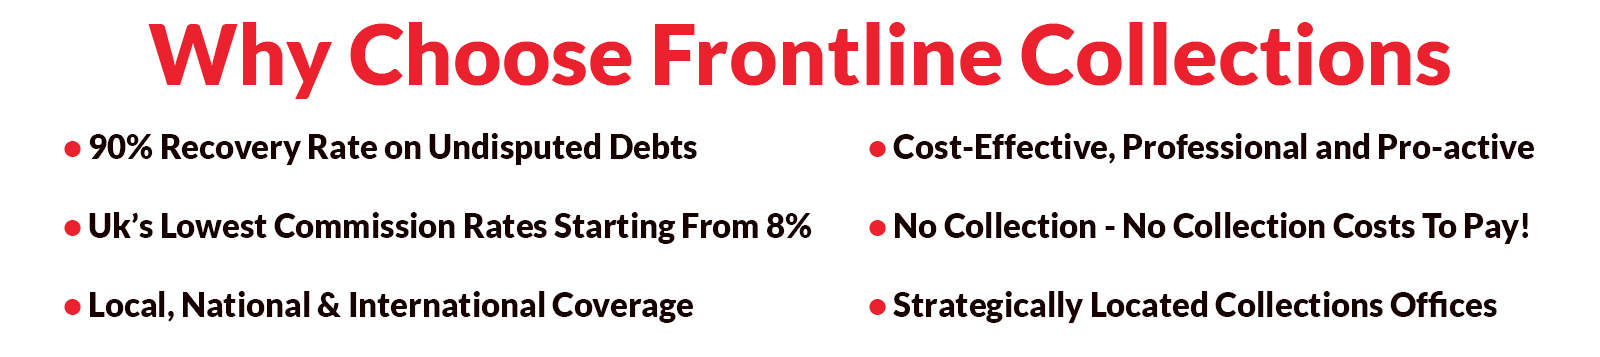 why choose frontline collections